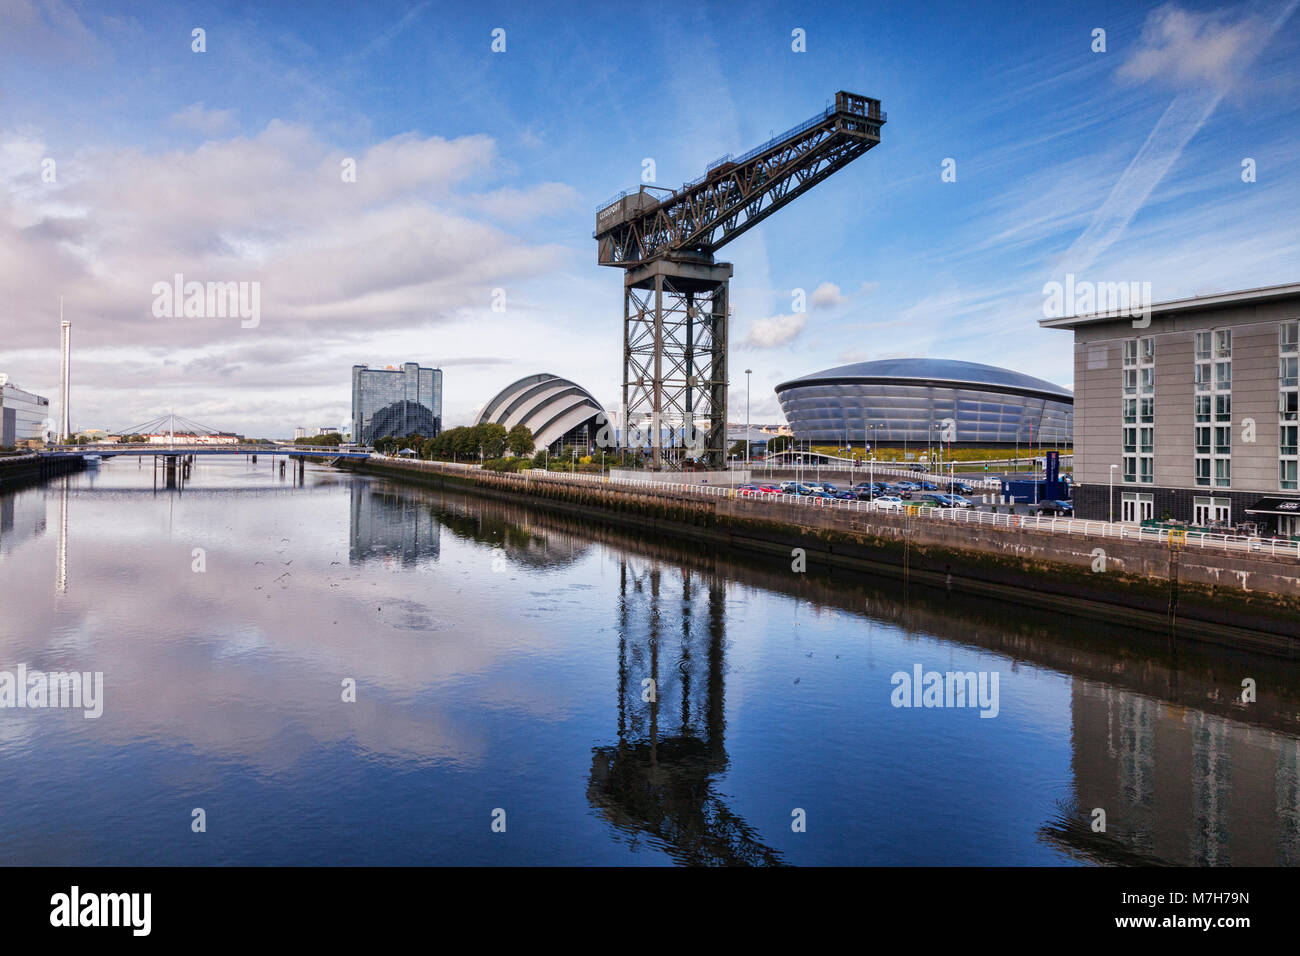 Clyde Waterfront Regeneration, with the Glasgow Tower, the Crowne Plaza Hotel, the SECC, the SSE Hydro and the Finnieston - Stock Image